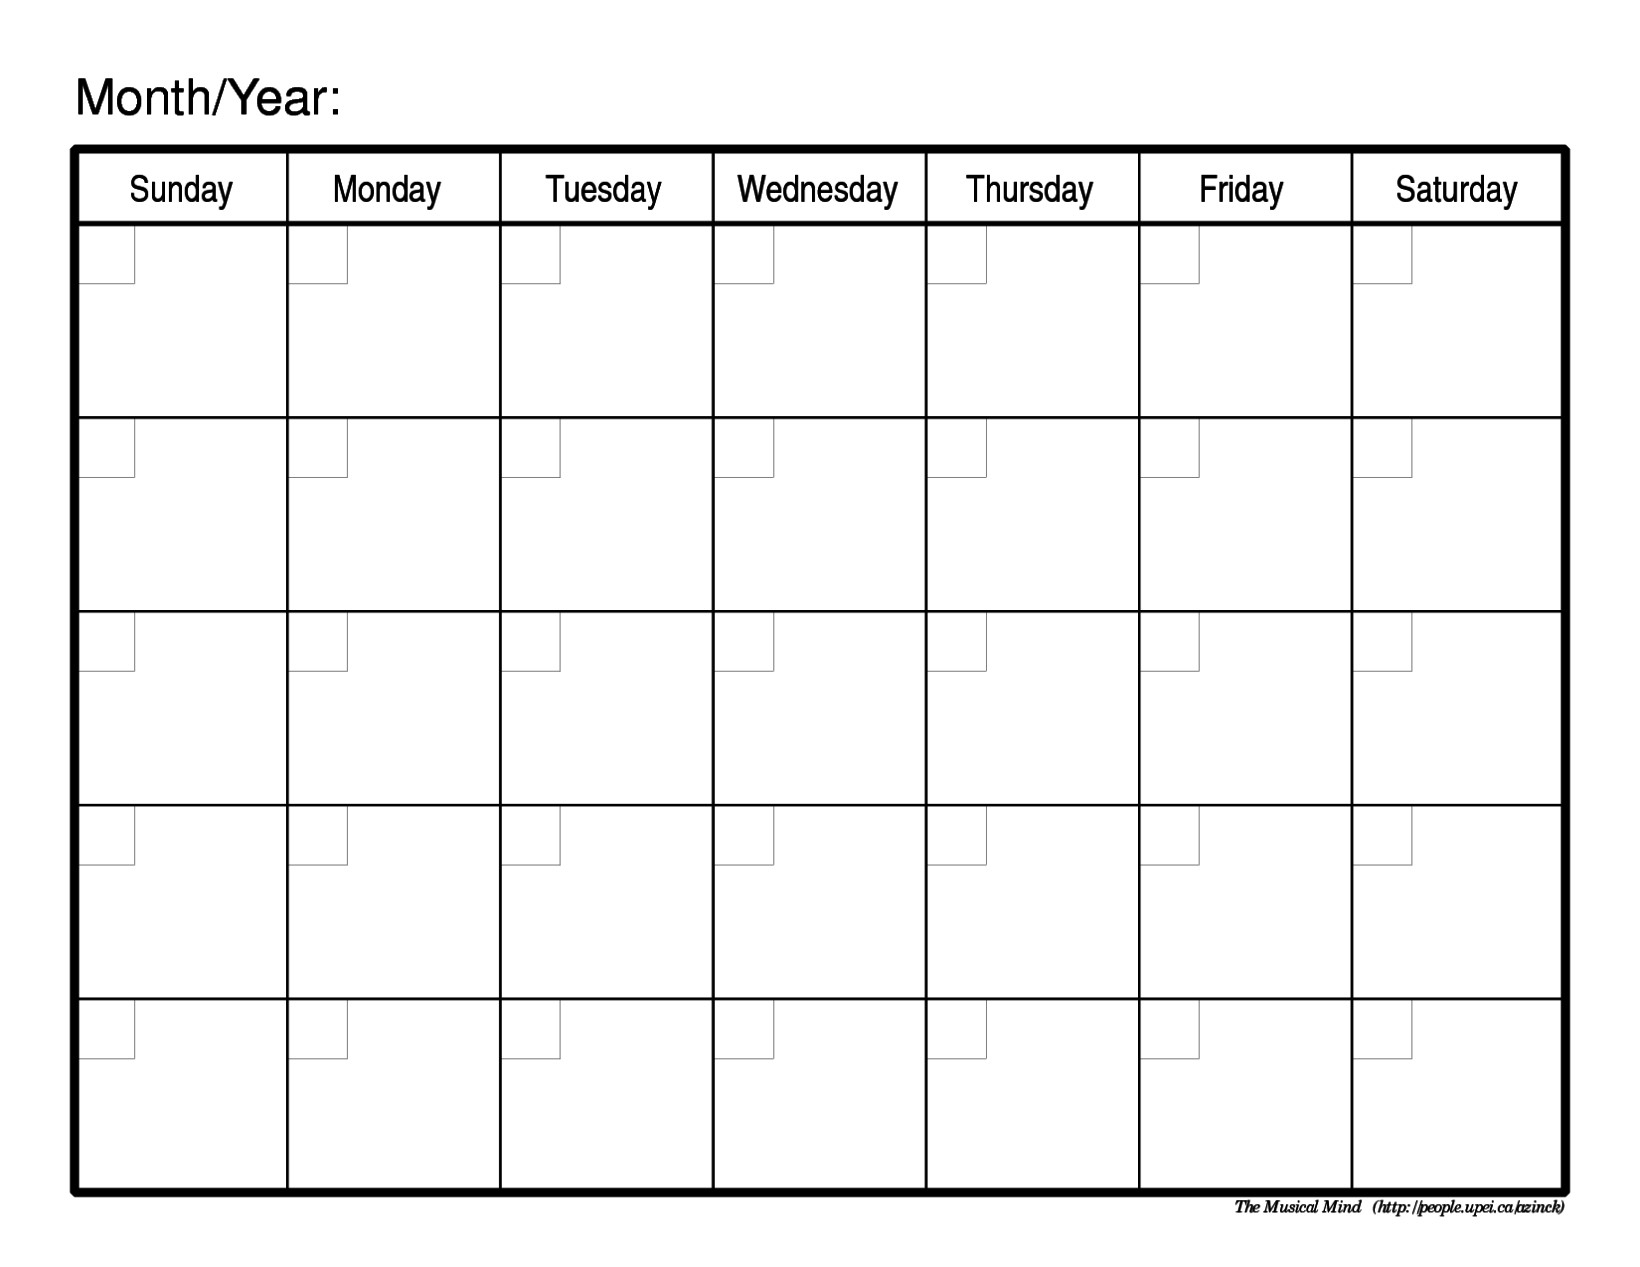 Free Printable Schedule Calendar Template Weekly June With Hours in Blank Printable Calendar By Month